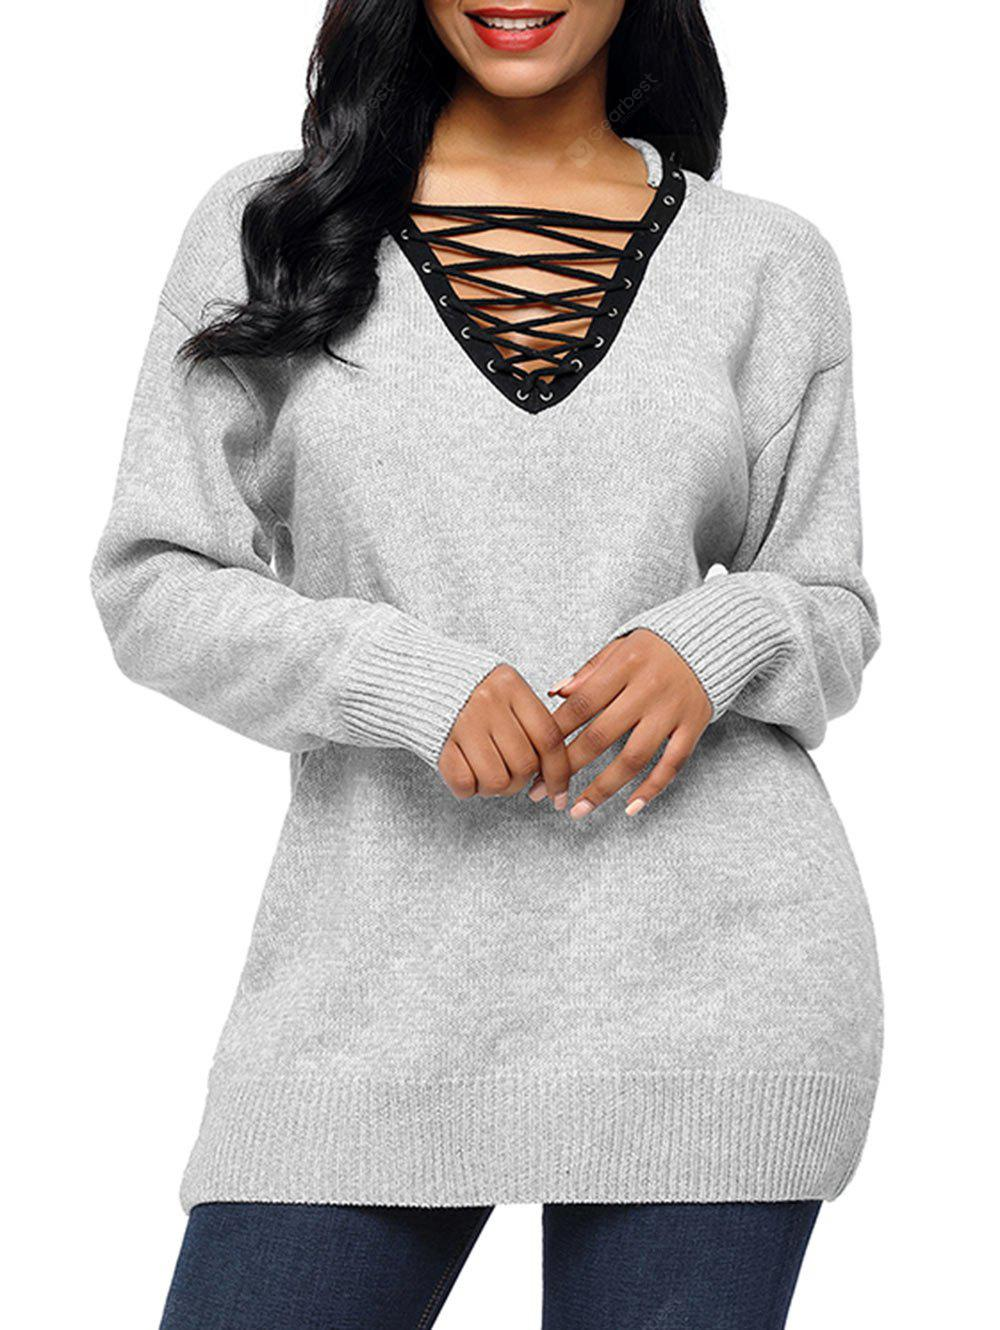 Drop shoulder Lace Up Tunic Sweater